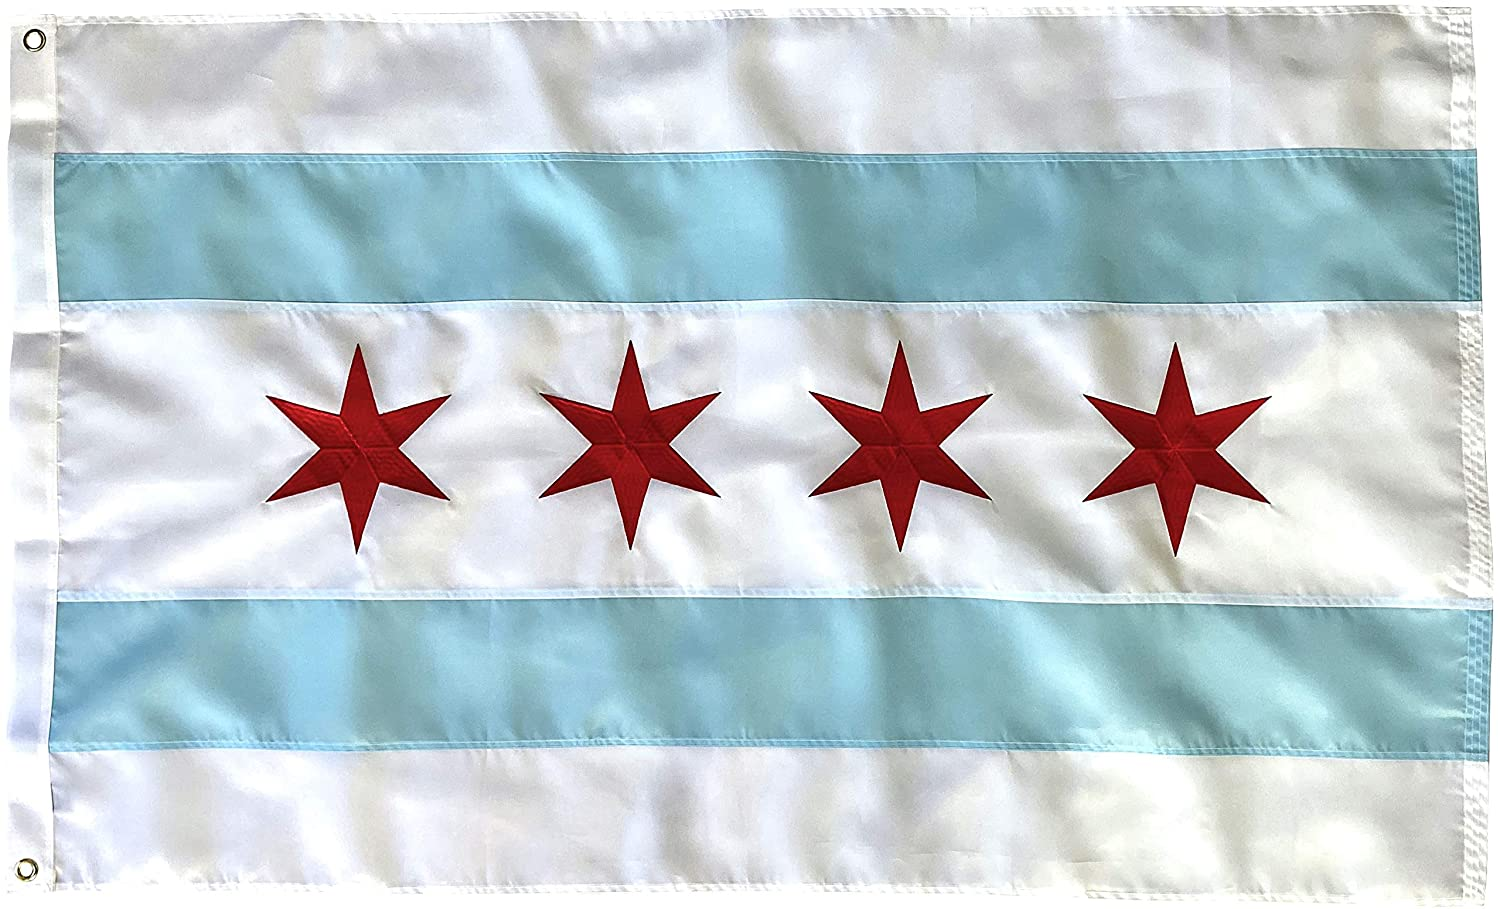 Chicago Flag - 3X5 Foot Outdoor Nylon Banner with Embroidered Stars Double Stitched Sewn Stripes, Brass grommets and Vibrant UV Protected Color - Decal Included